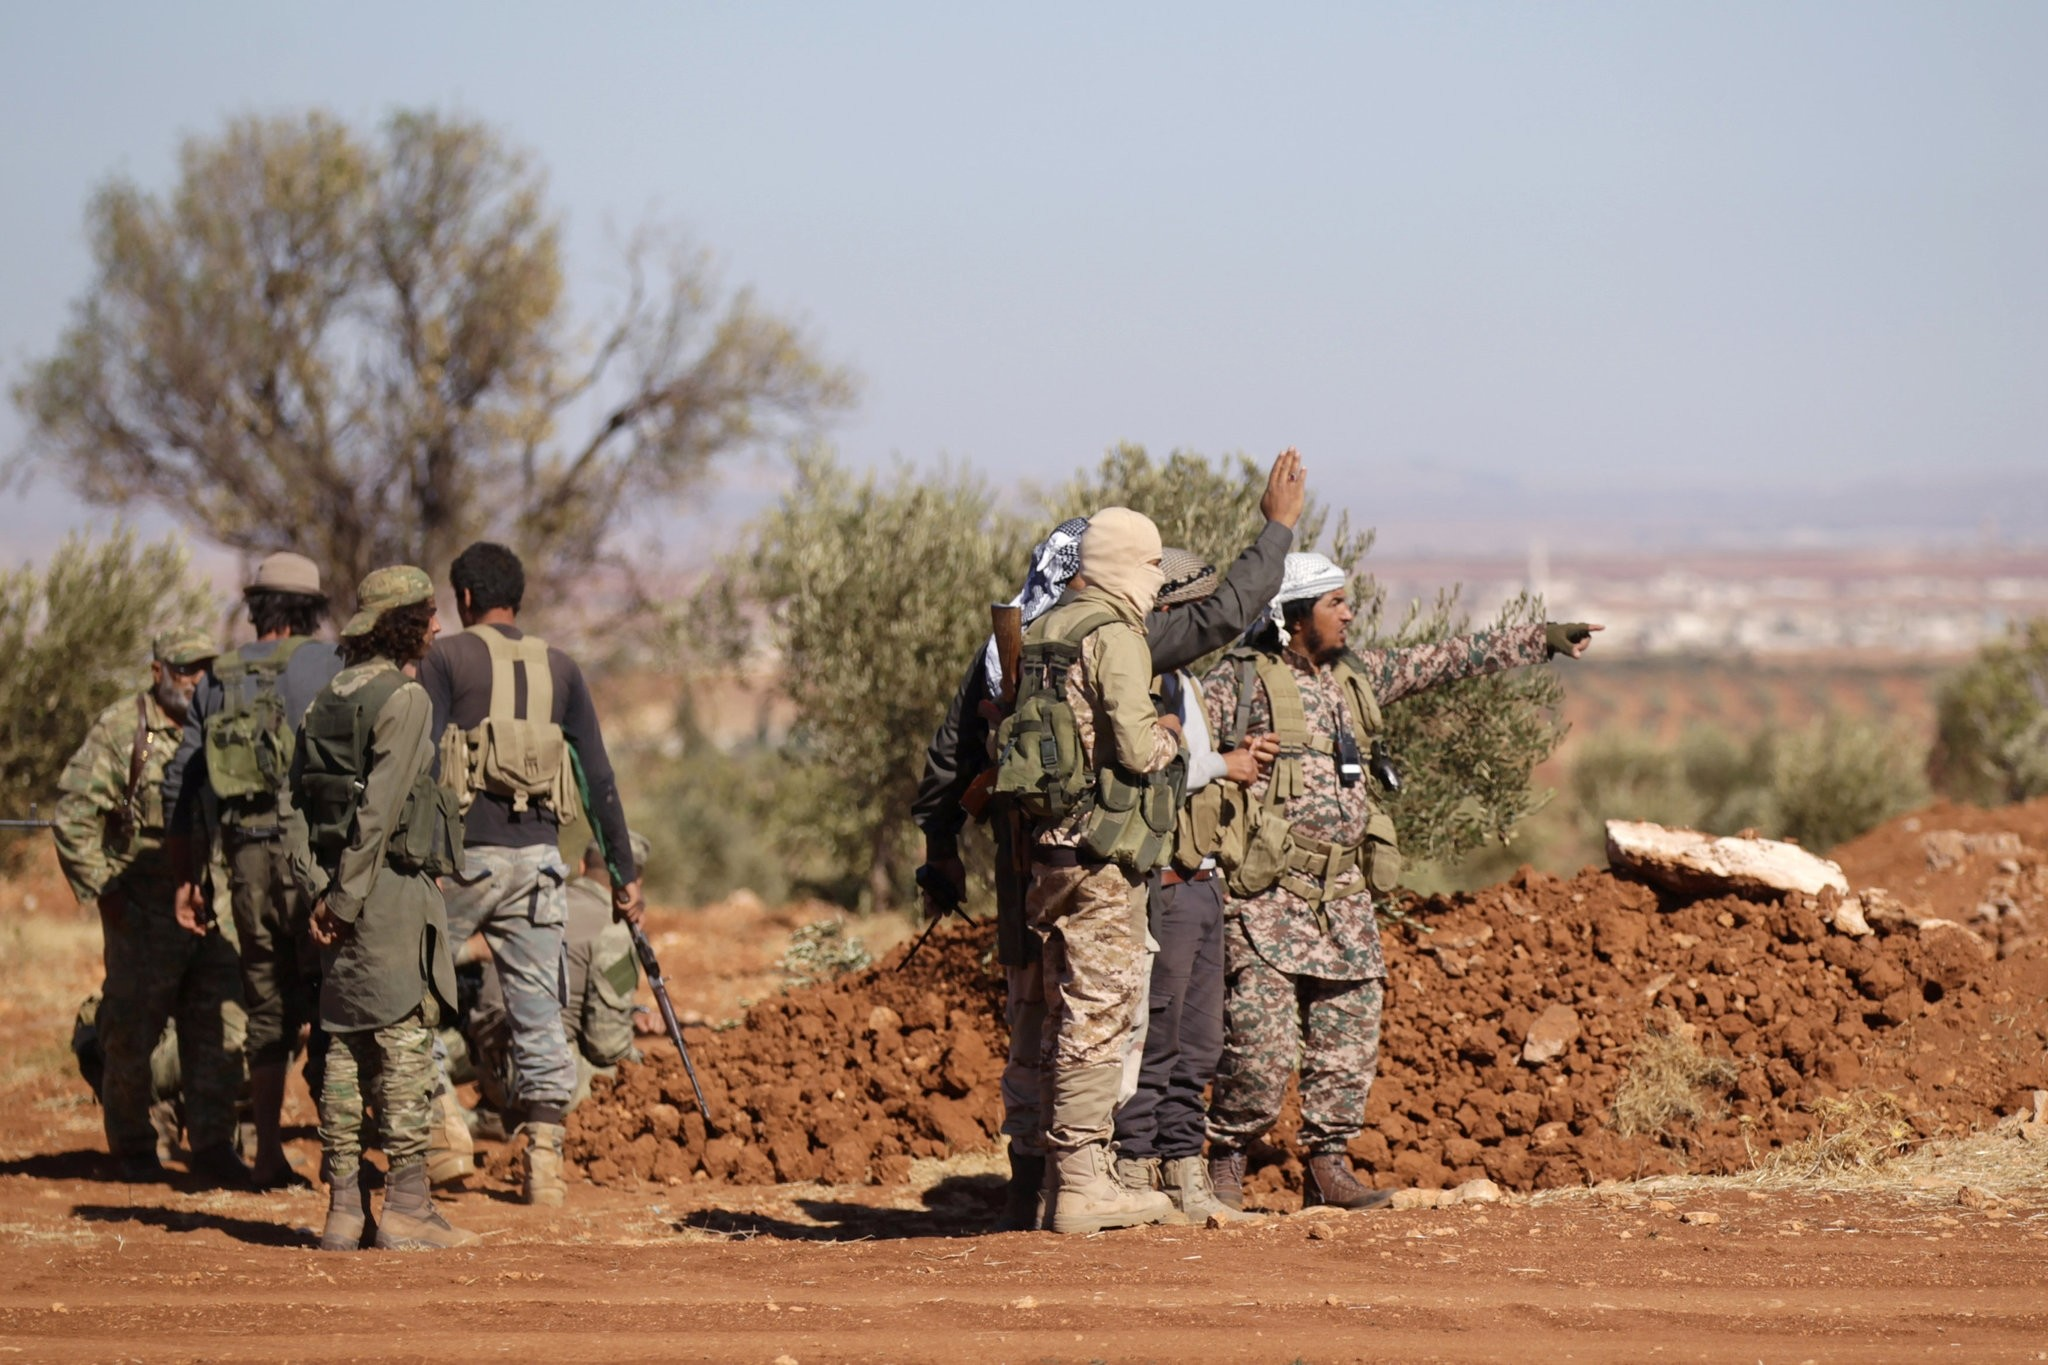 FSA fighters gather during their advance towards the Daesh-held city of al-Bab, northern Syria October 26, 2016. (REUTERS Photo)